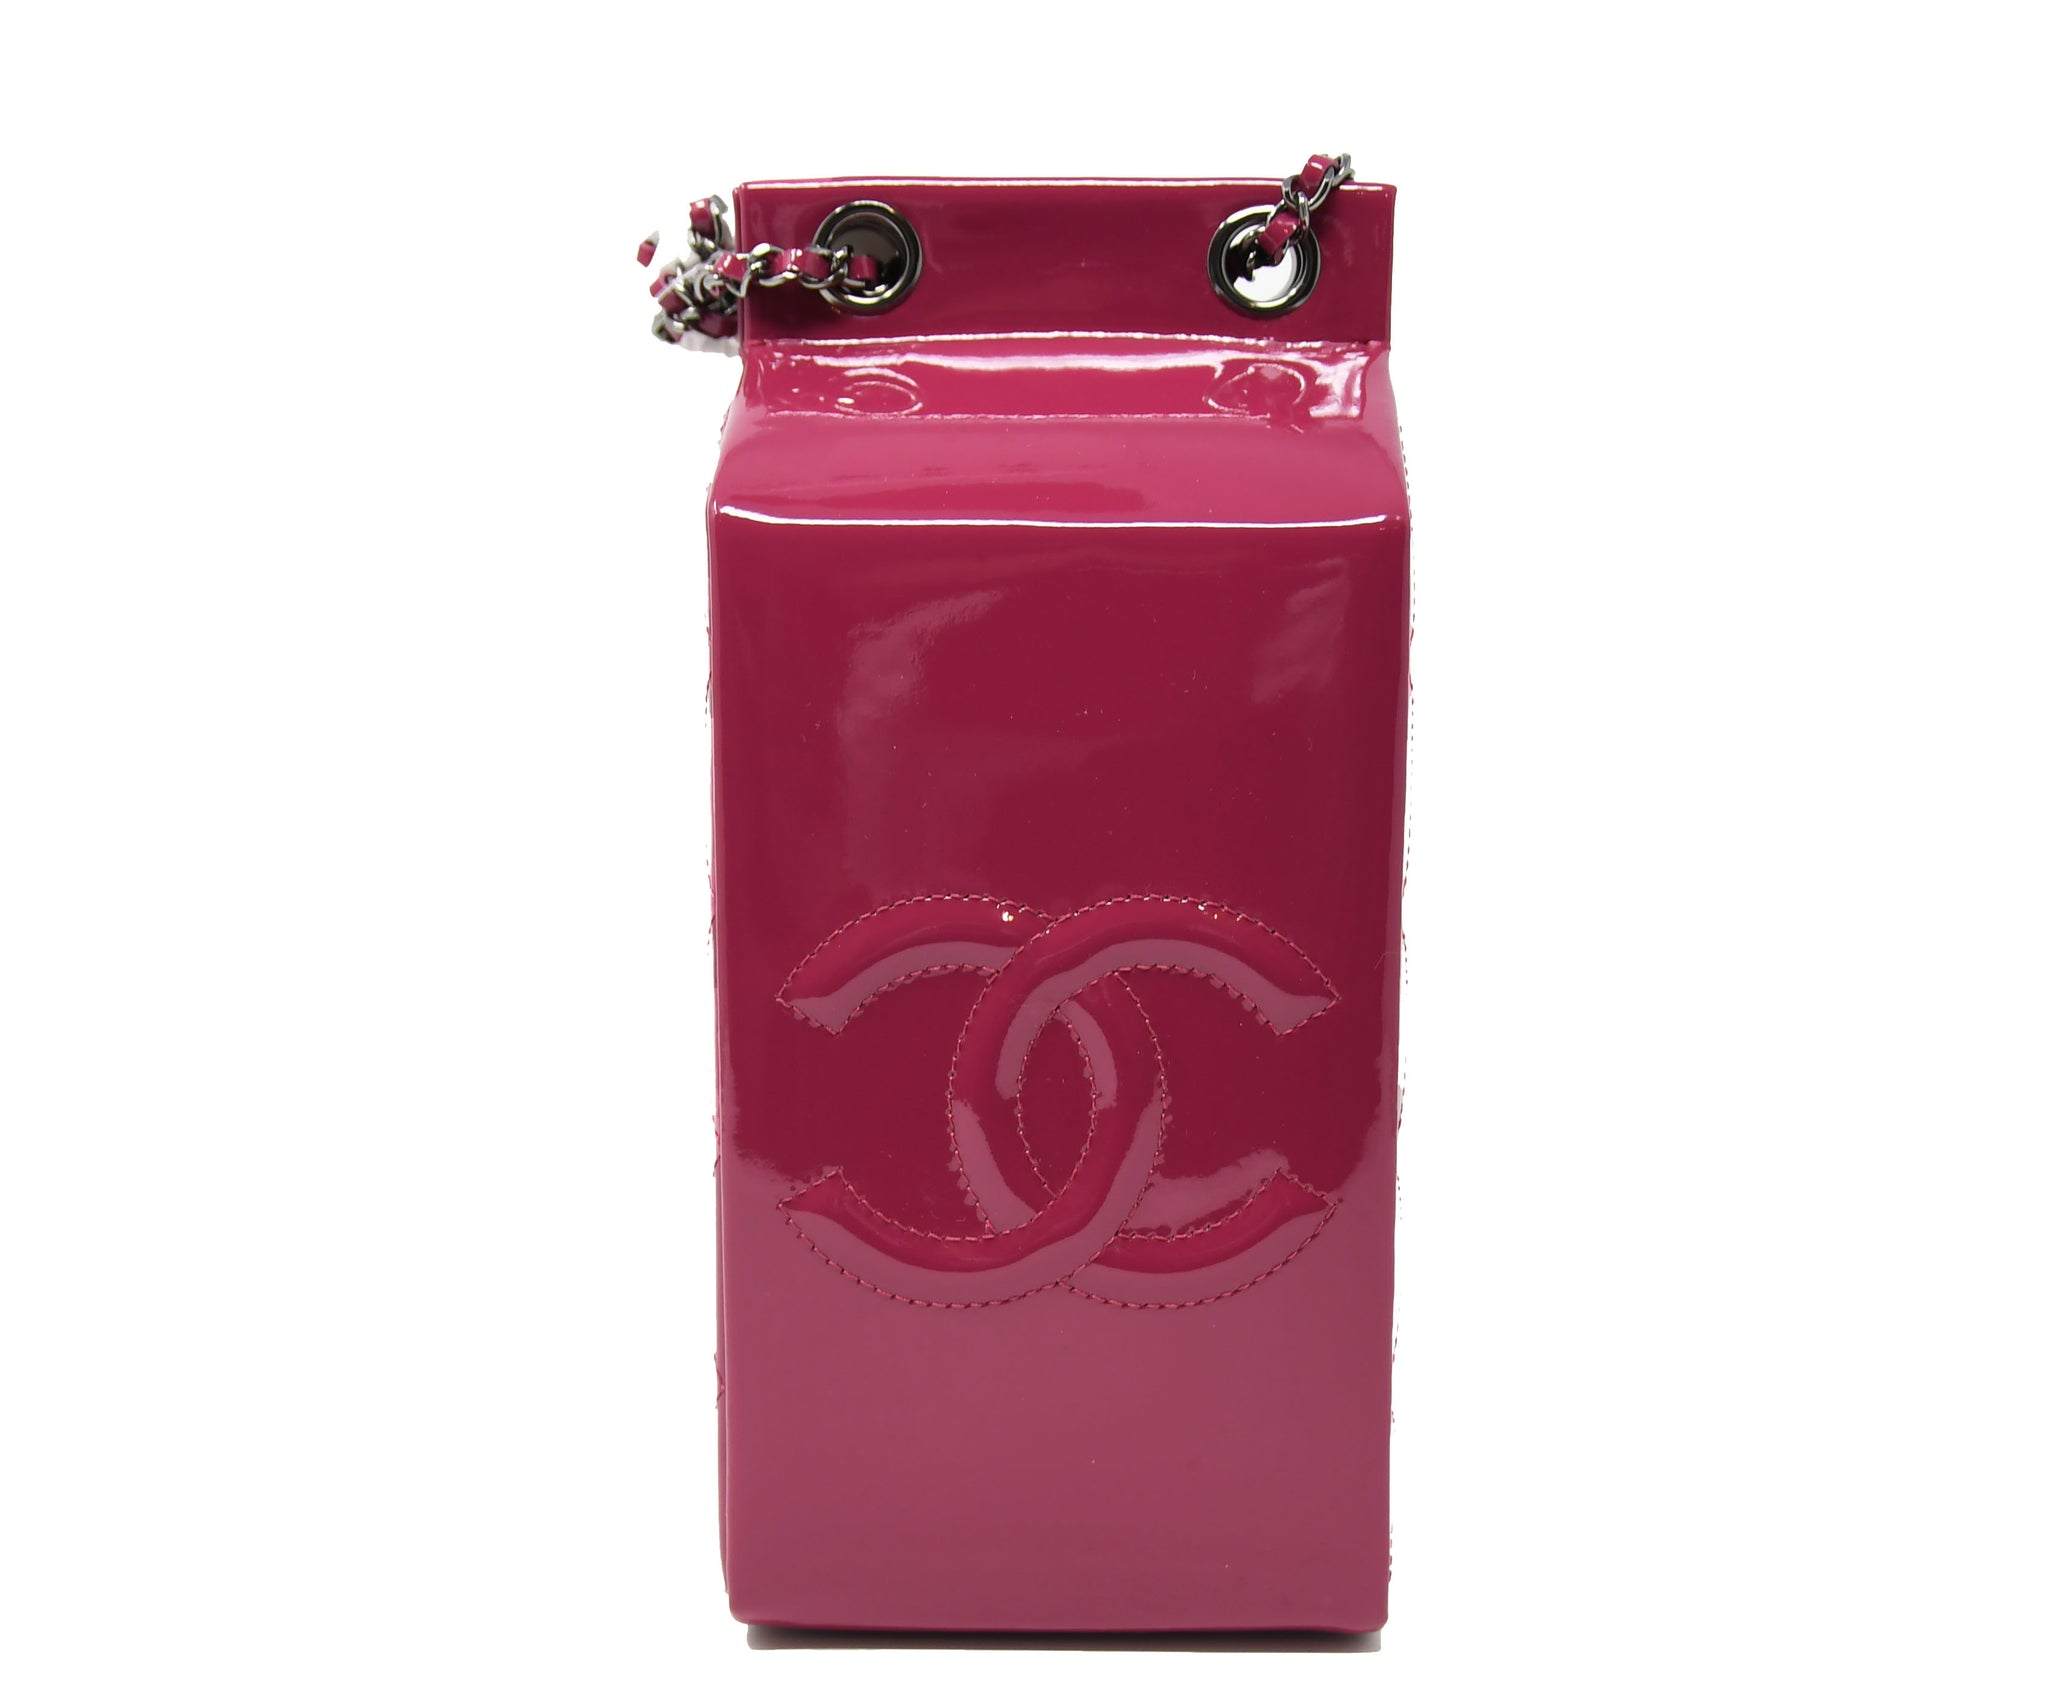 Chanel Milk Carton Bag